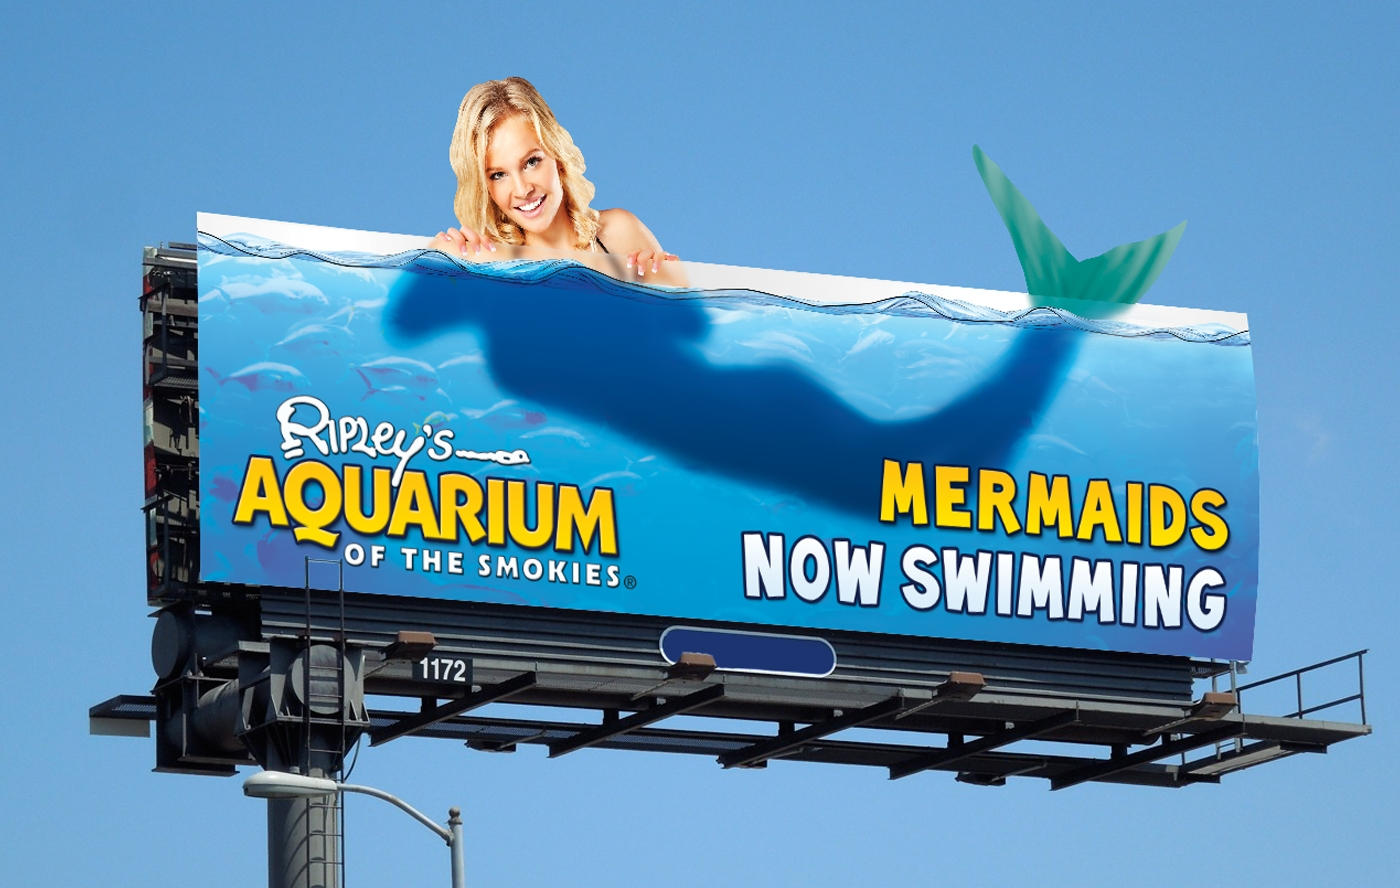 Ripley's Aquarium Advertising Billboard